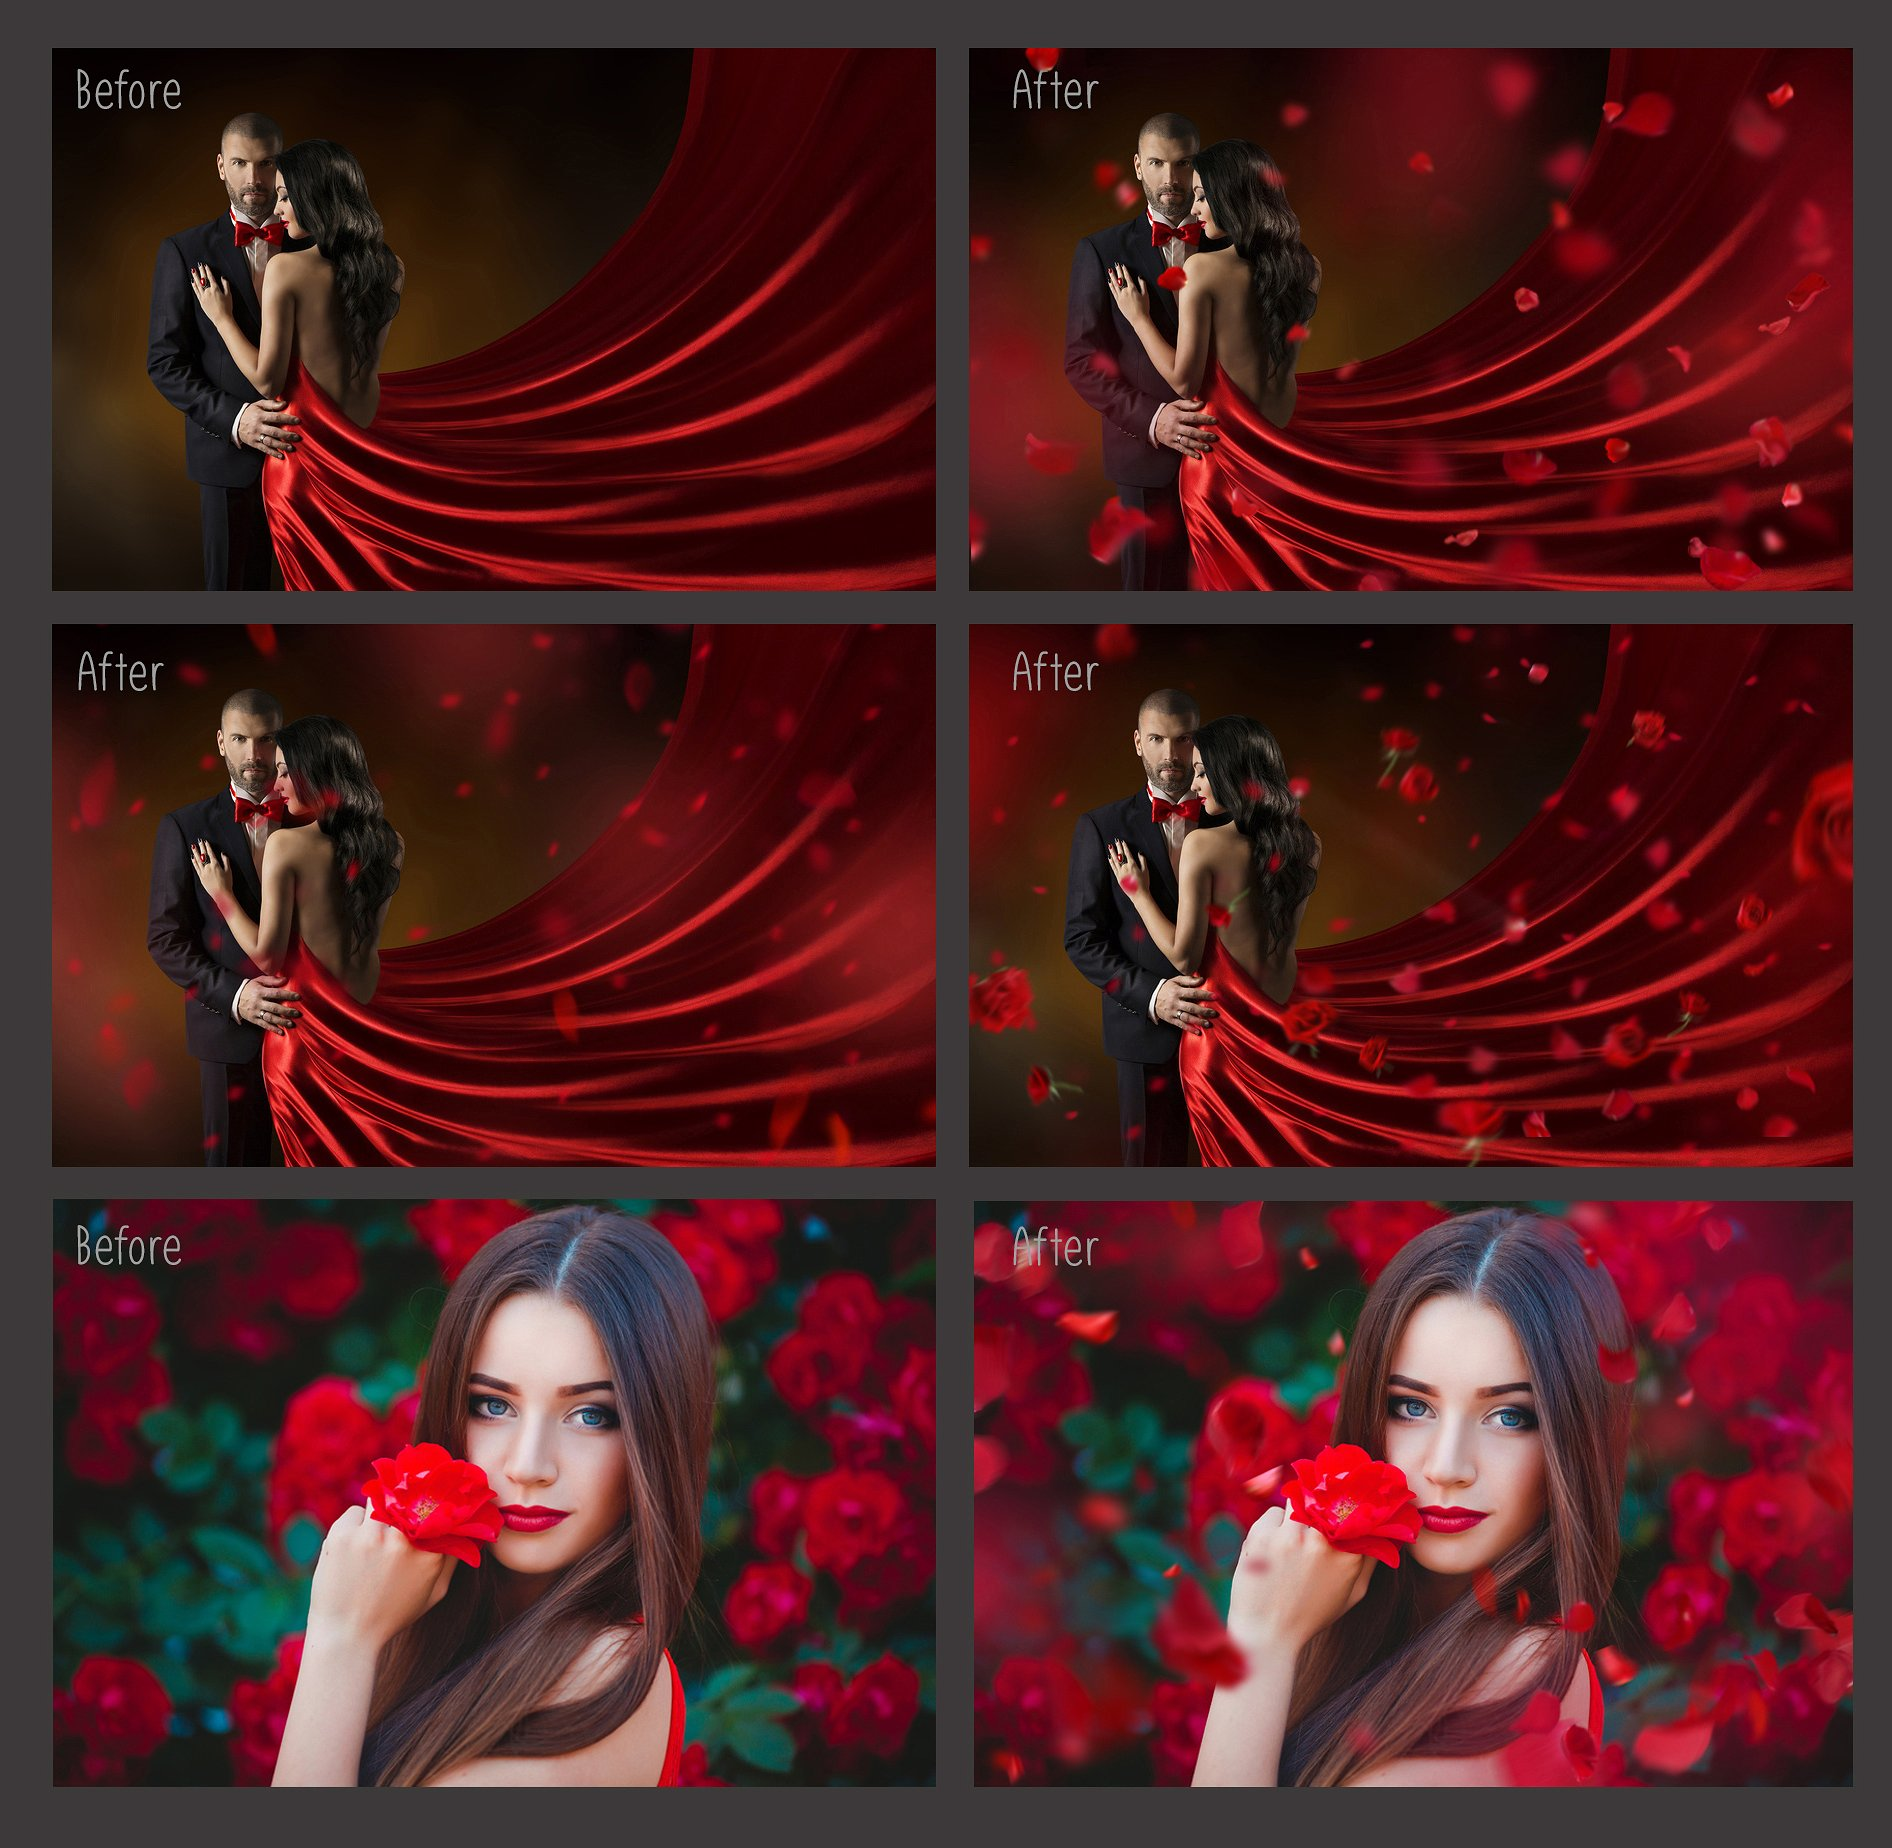 Falling Rose Petals Photo Overlays example image 5